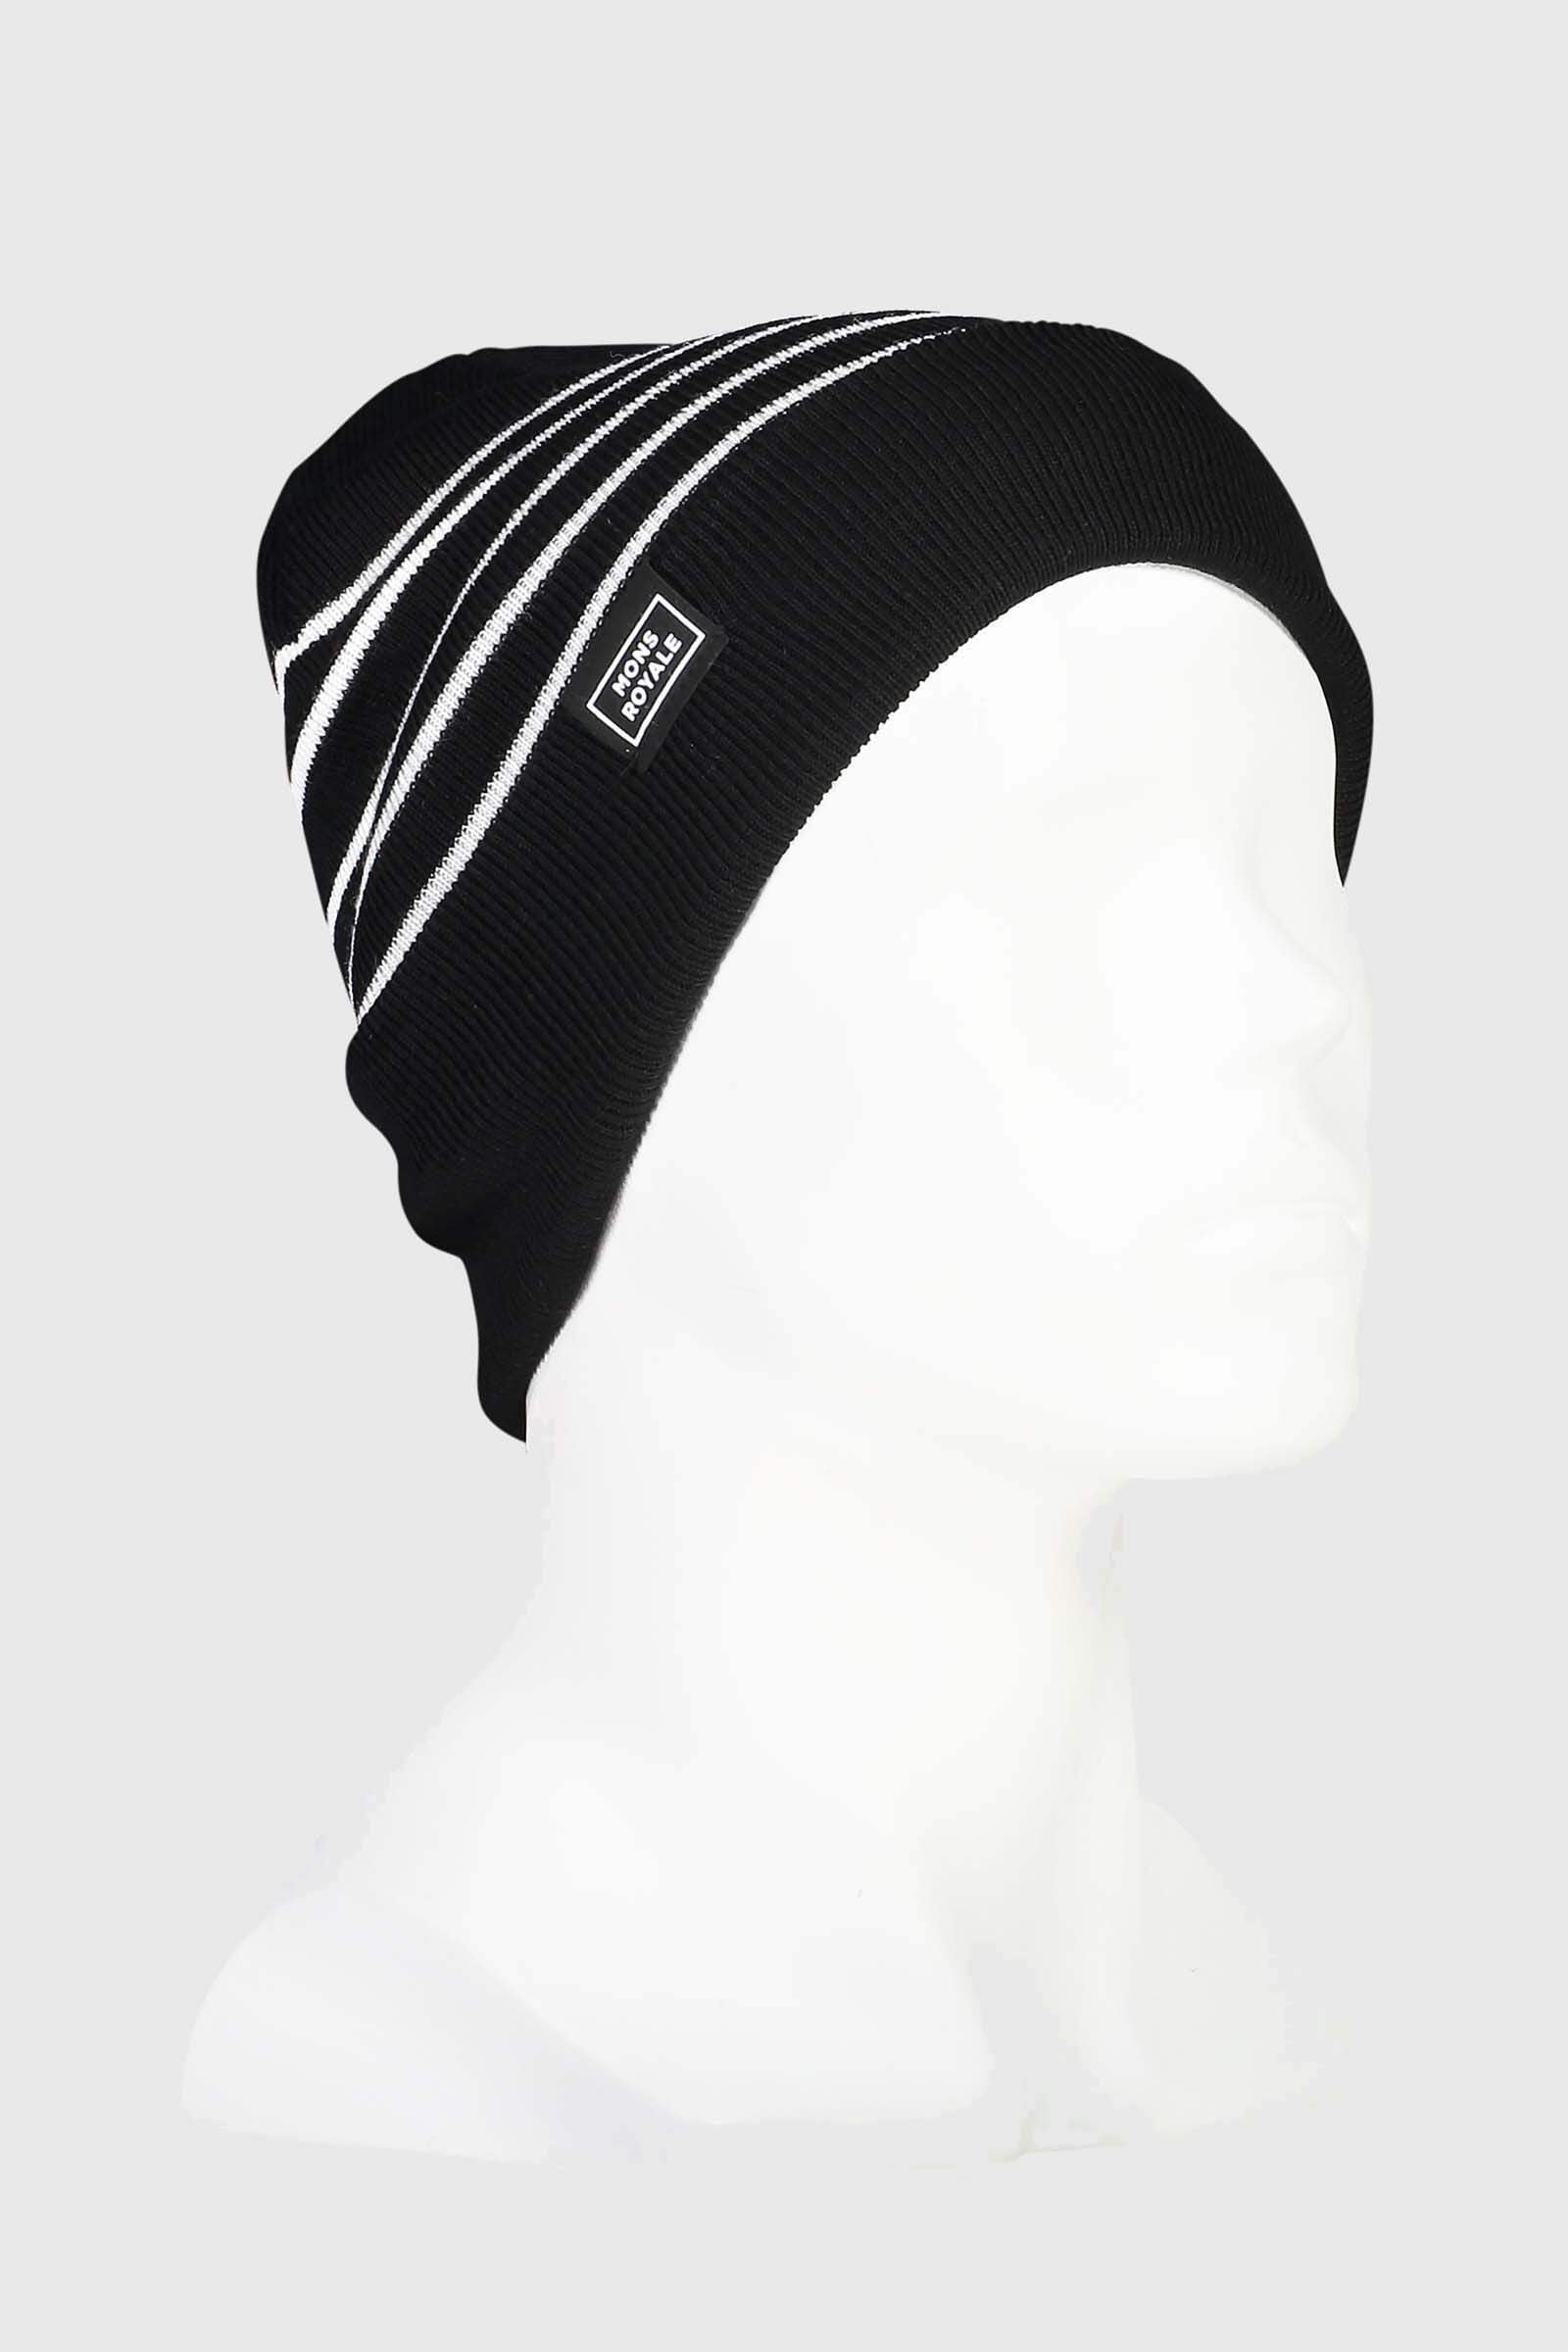 McCloud Striped Beanie - Black / White